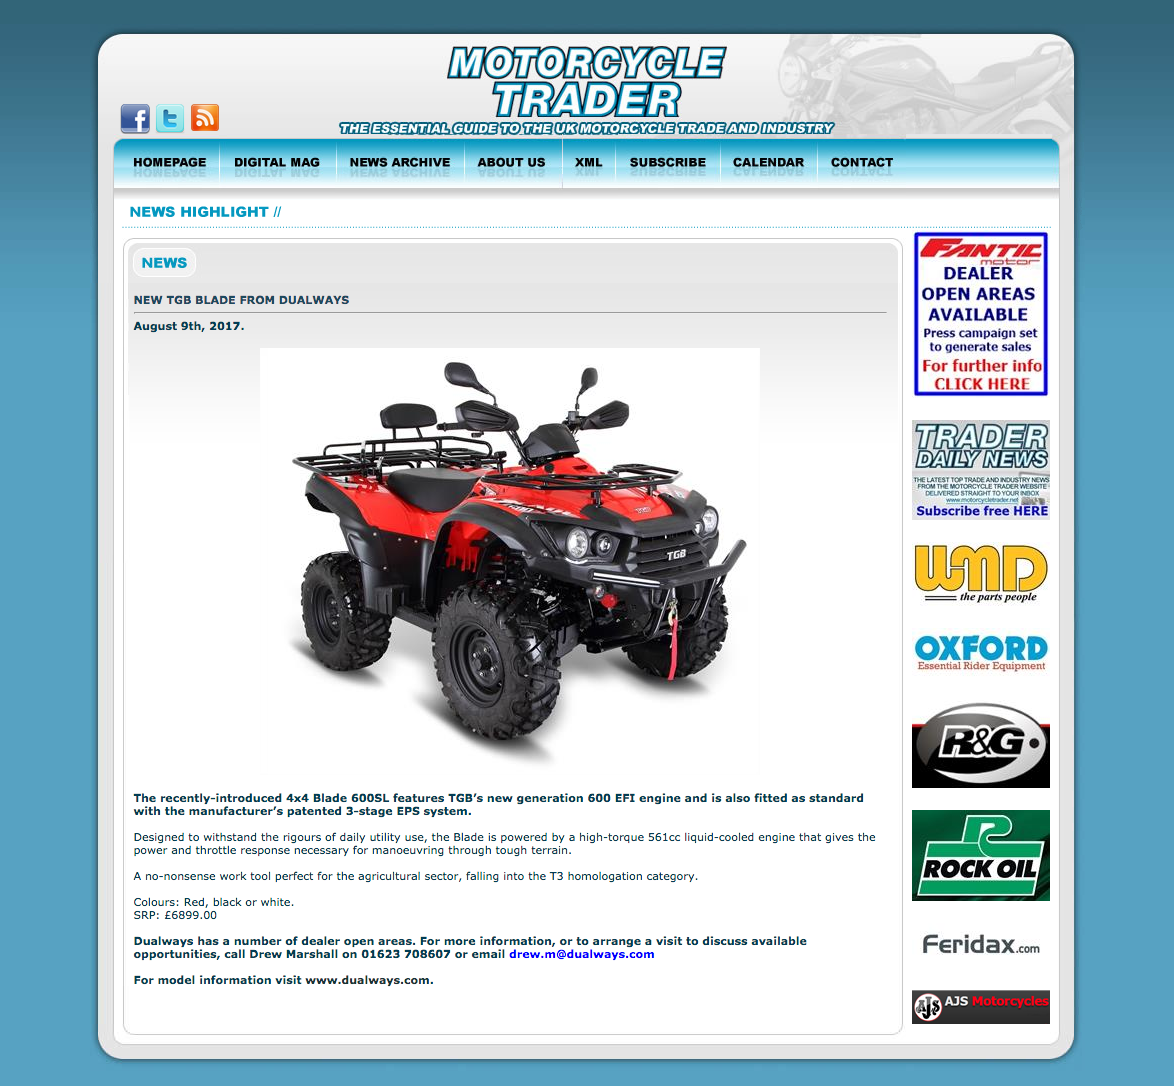 NEW TGB BLADE 4X4 600SL FEATURED IN MOTORCYCLE TRADER